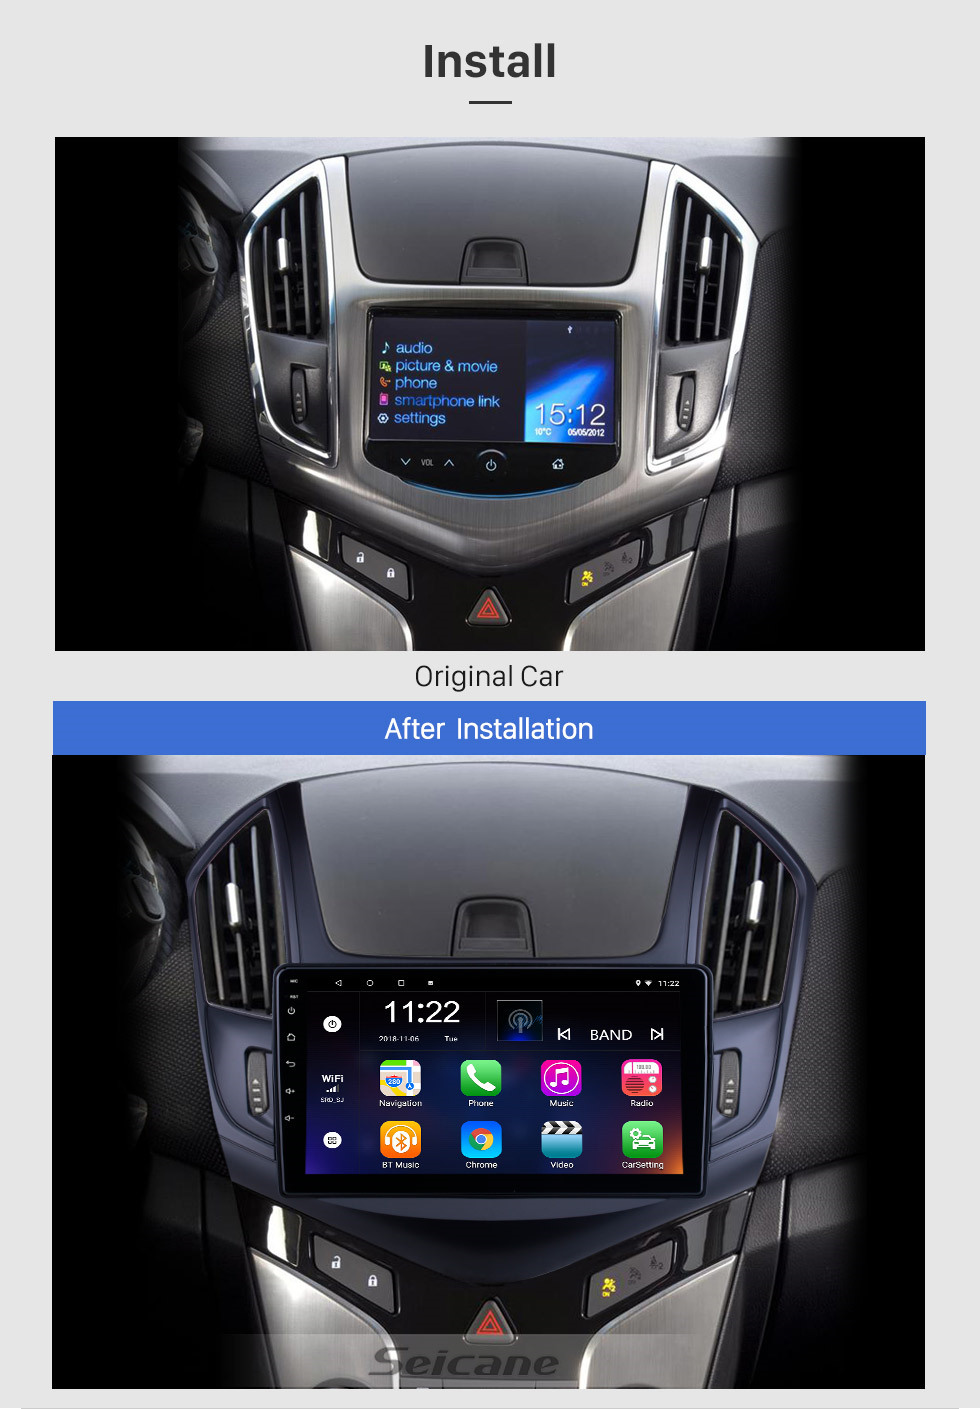 Seicane OEM 9 inch Android 10.0 for 2013 Chevy Chevrolet Cruze Radio with Bluetooth HD Touchscreen GPS Navigation System support Carplay